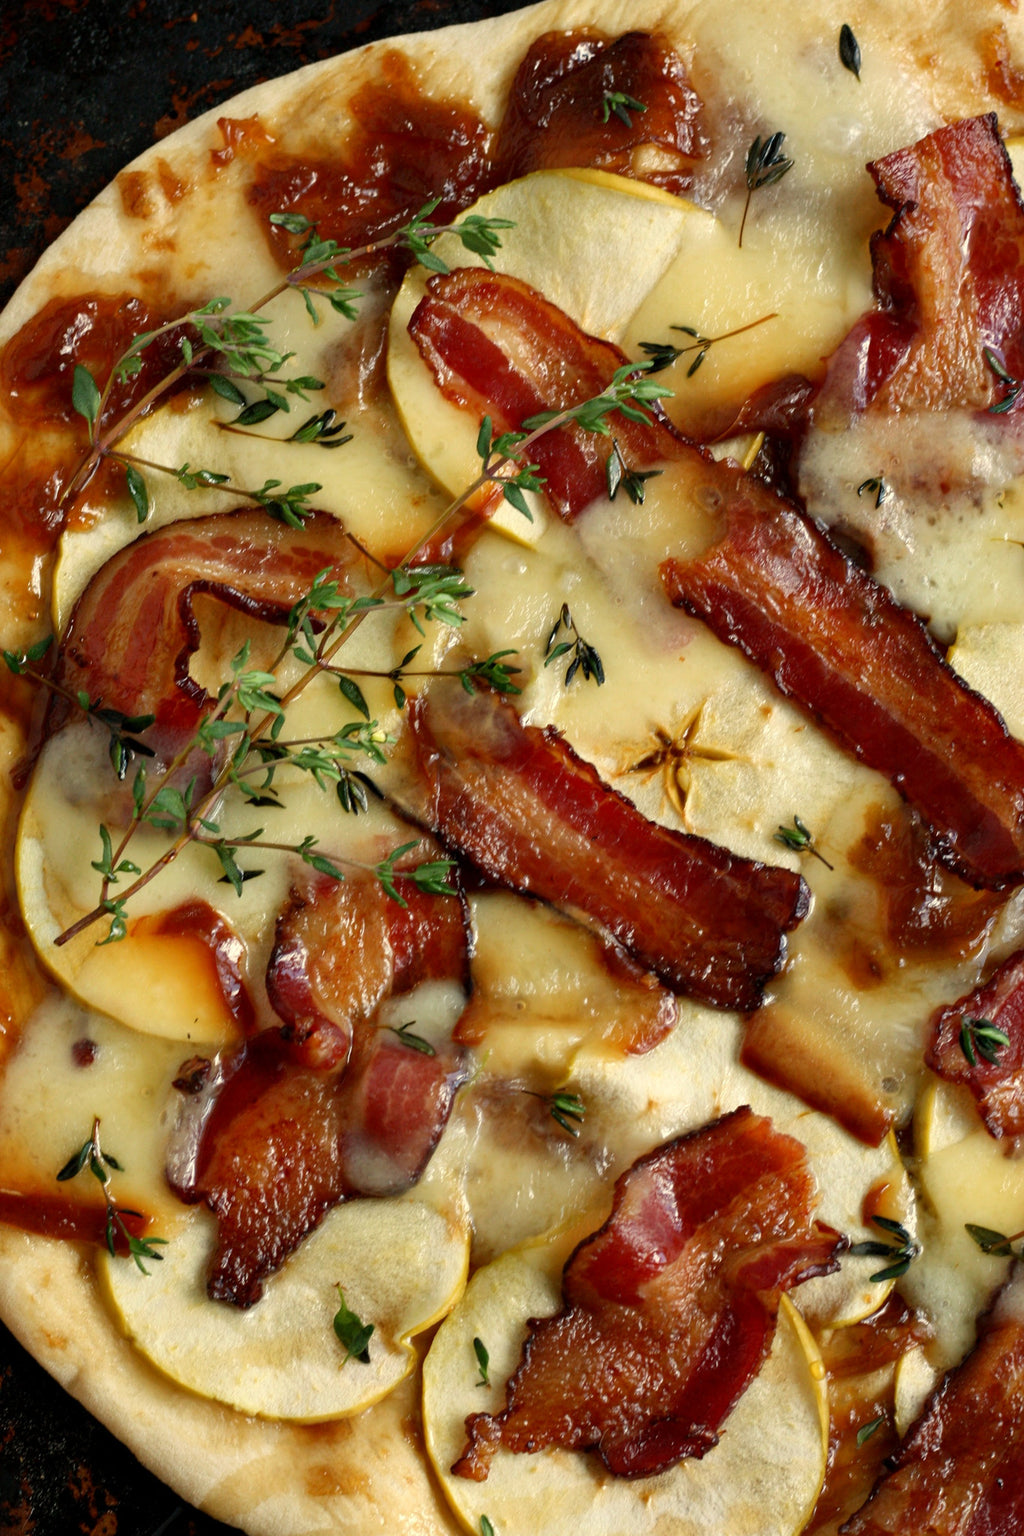 Bacon, Onion, Cheese Pizza | Wozz! Kitchen Creations